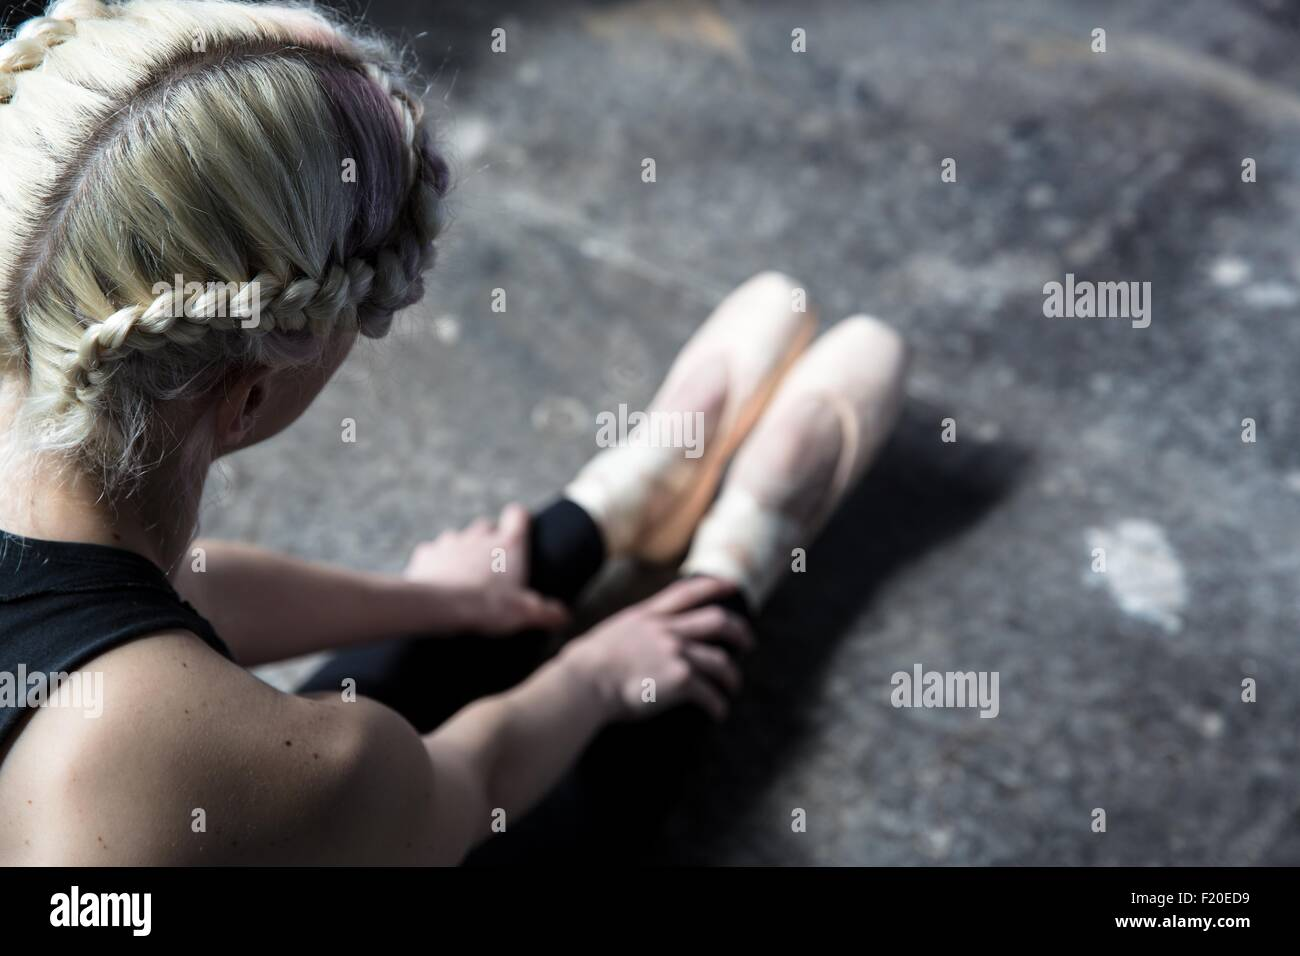 Dancer stretching in studio - Stock Image